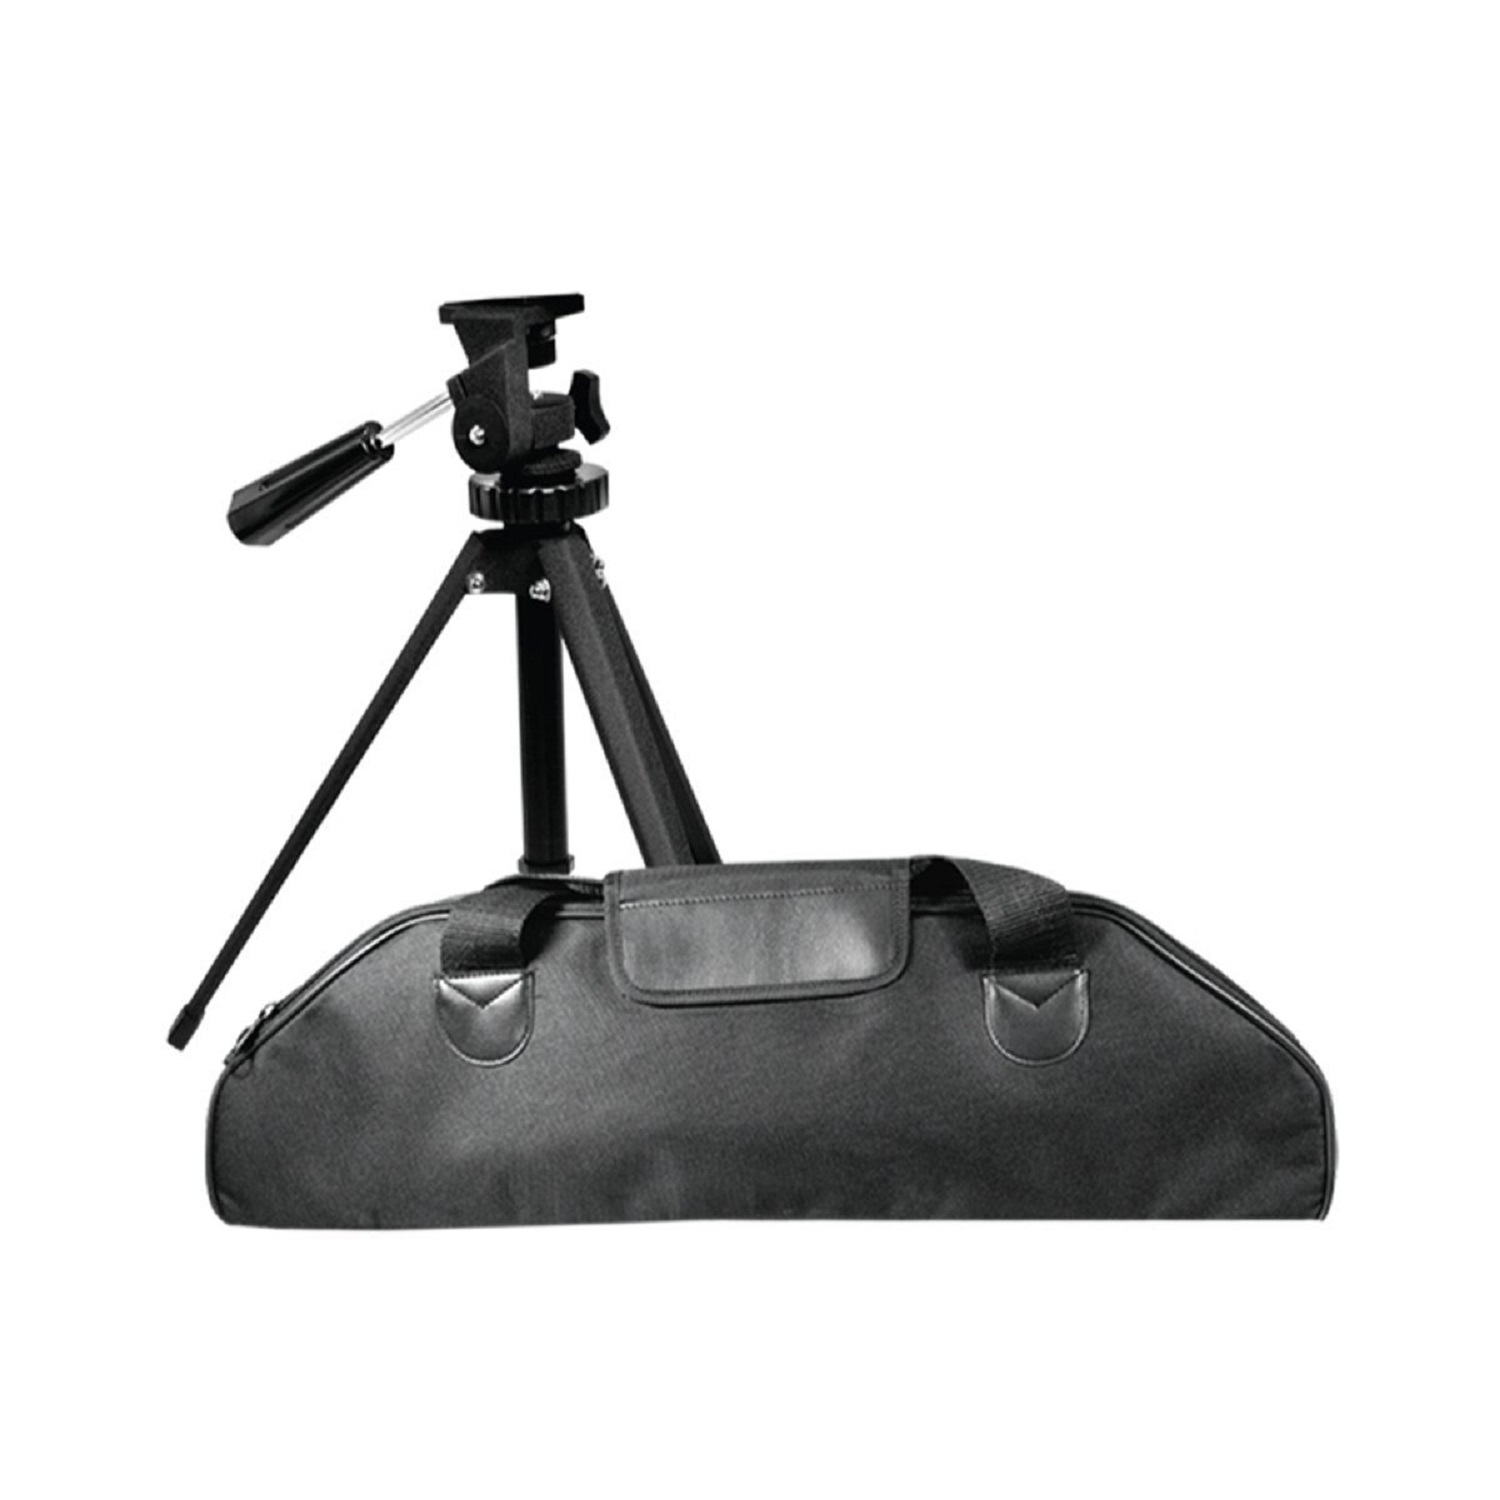 Barska 20-60x60 Spotter SV Spotting Scope with Tripod and Case